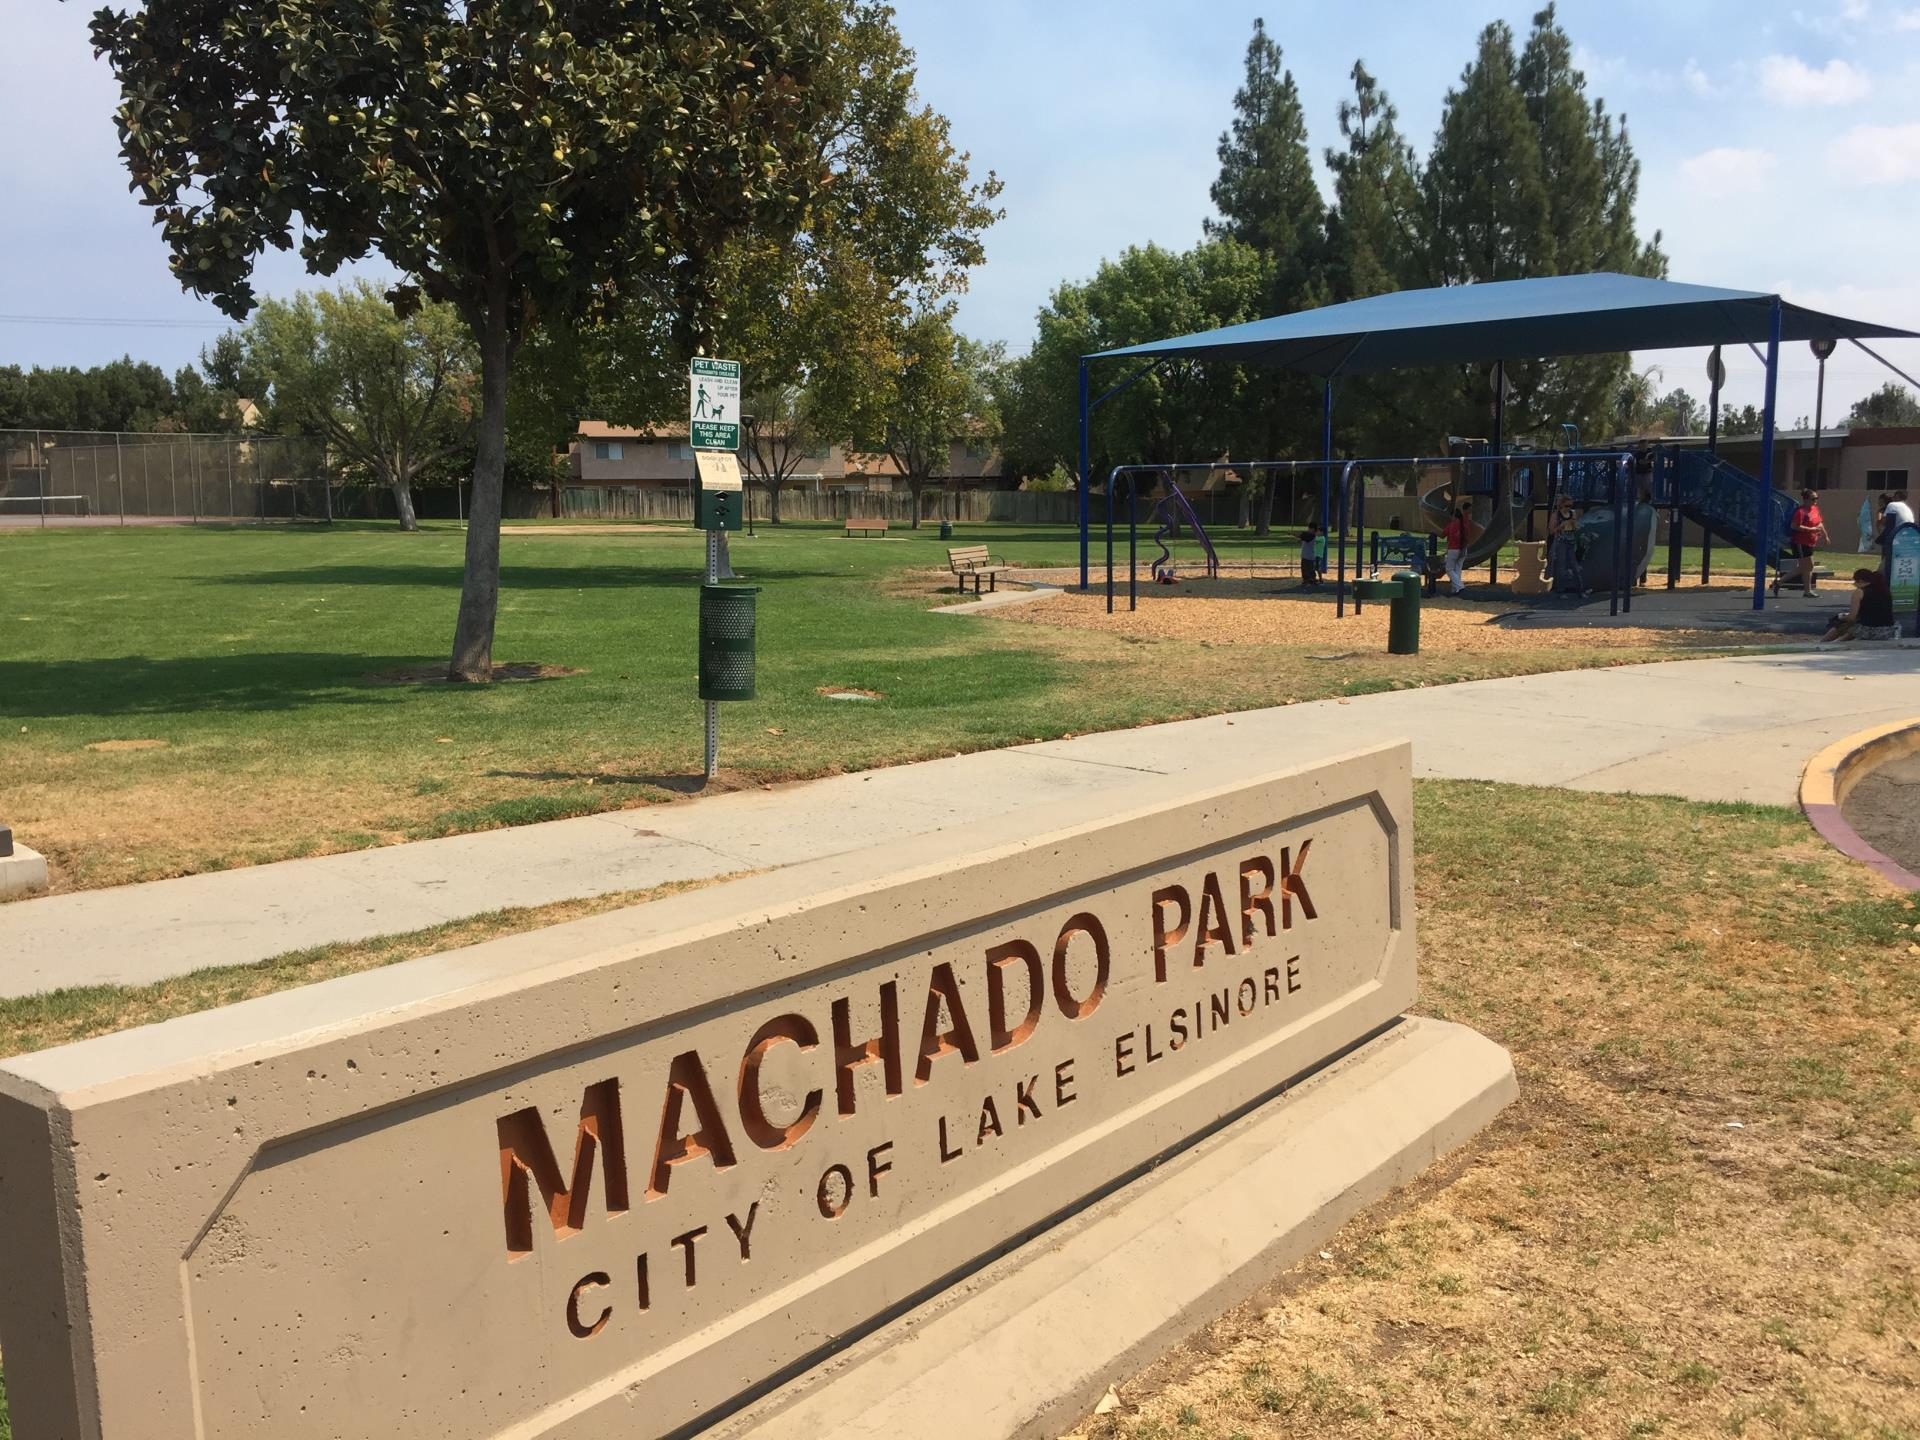 machado monumnet and park